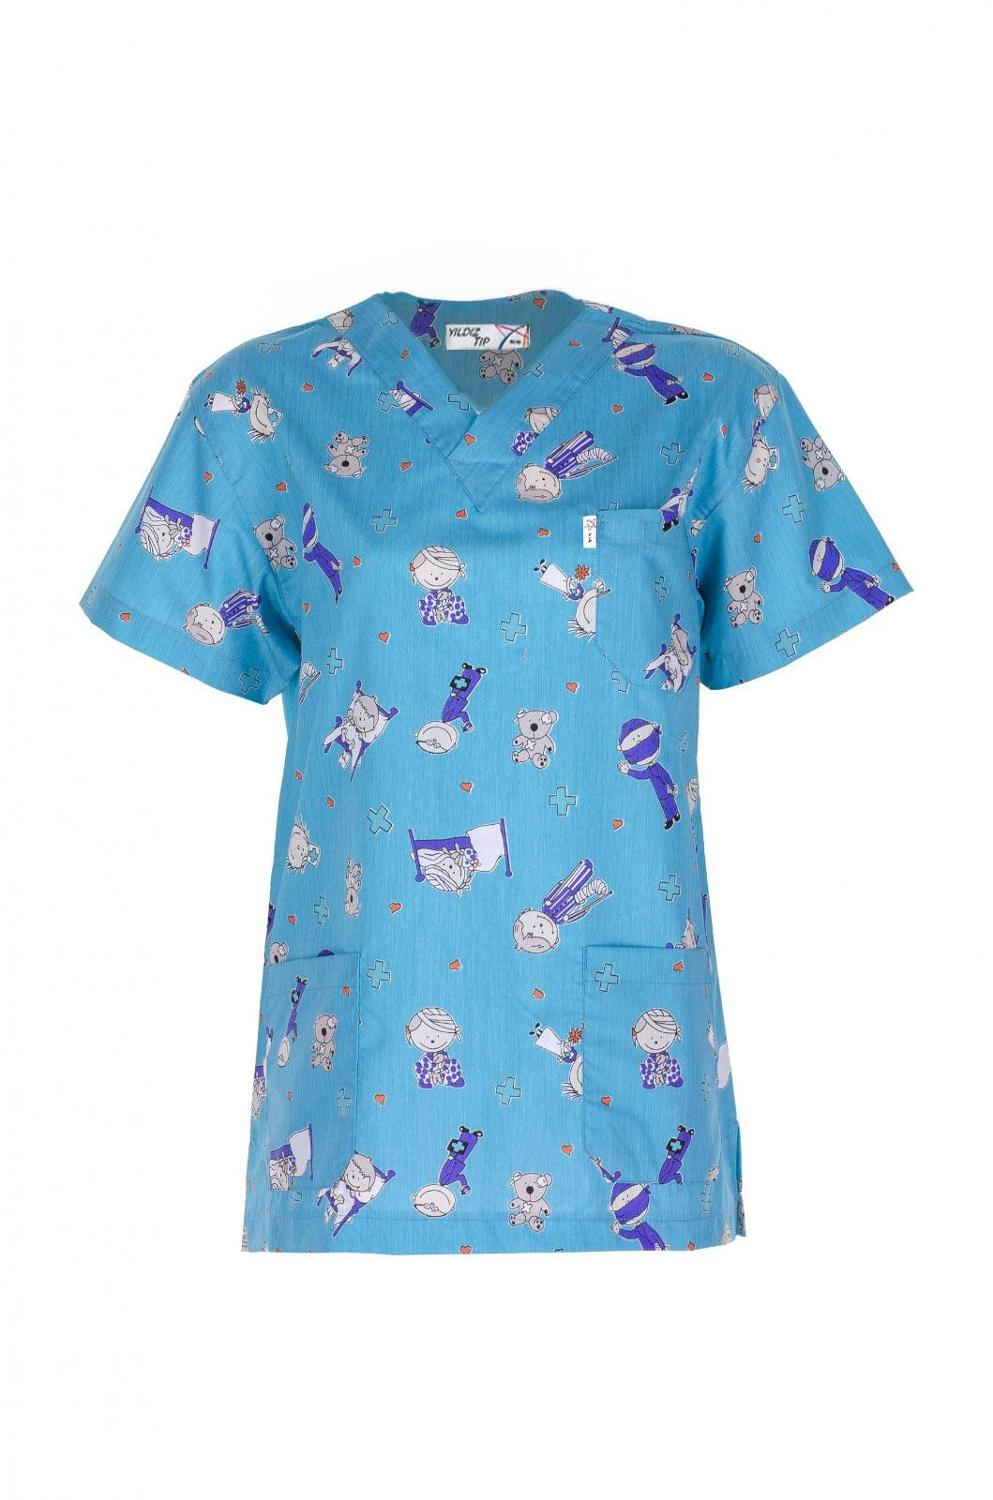 PATTERNED SCRUB TOPS